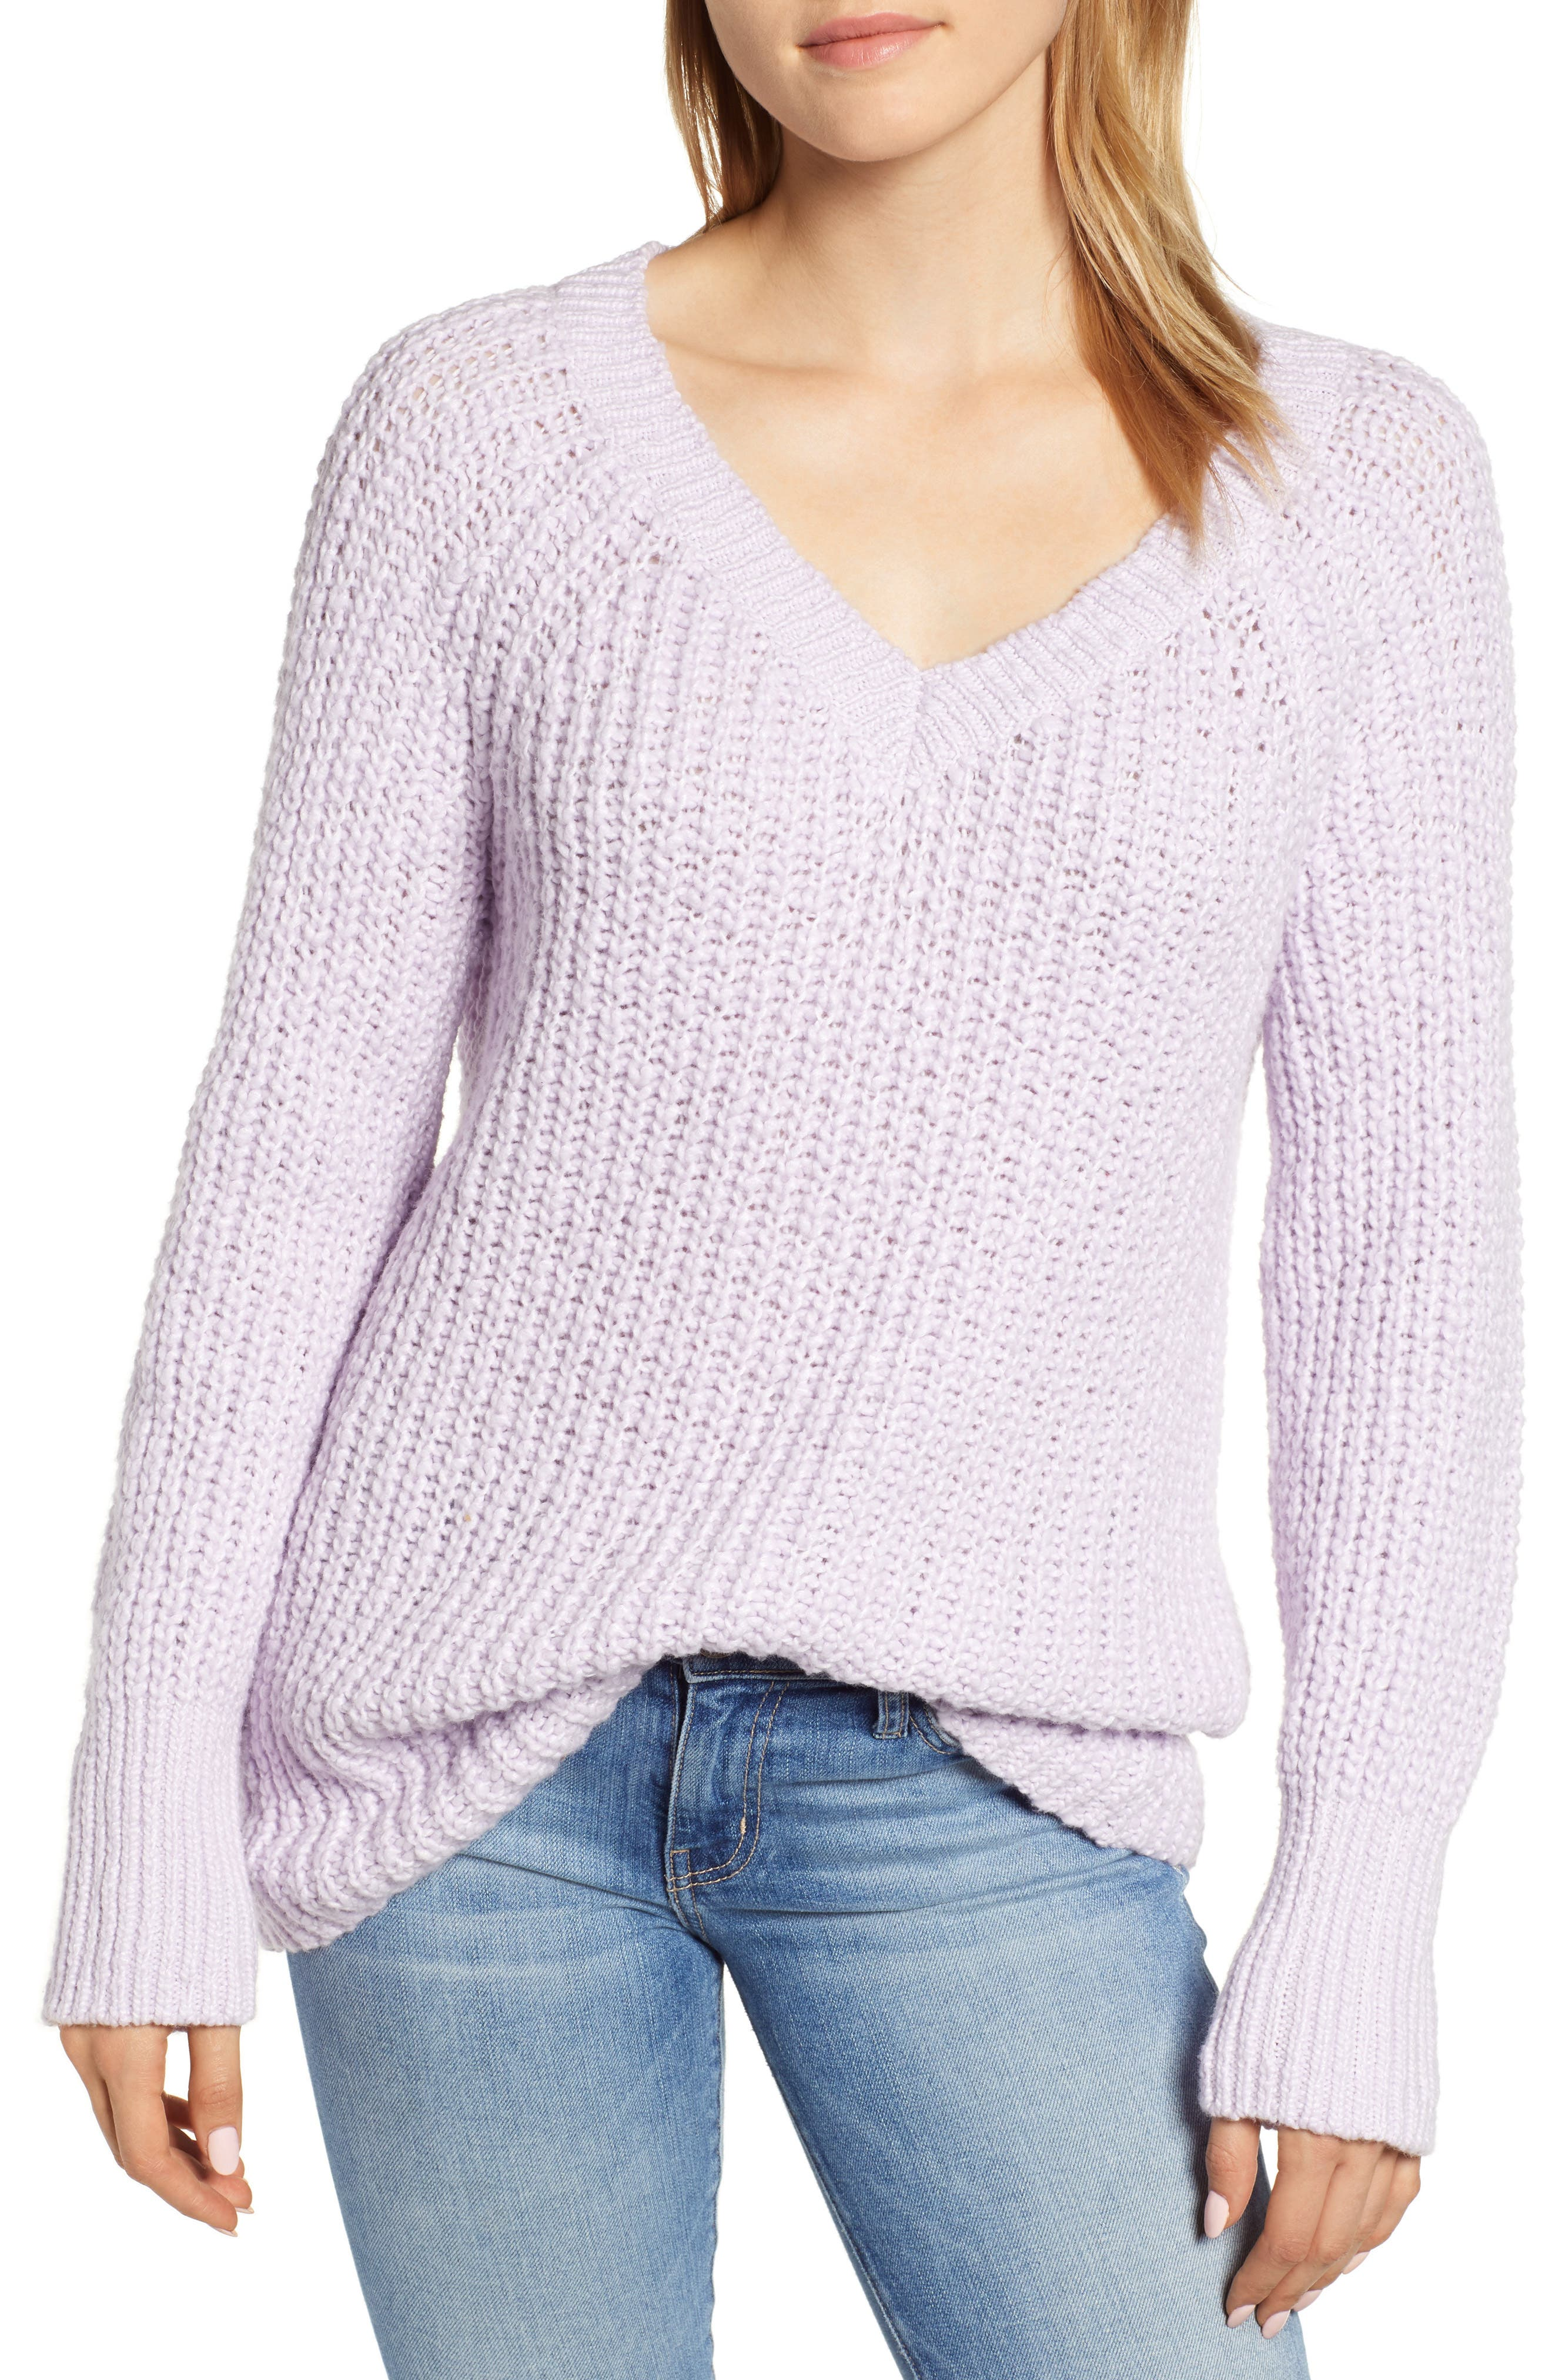 Cozystitch V-Neck Sweater,                             Main thumbnail 1, color,                             LILAC